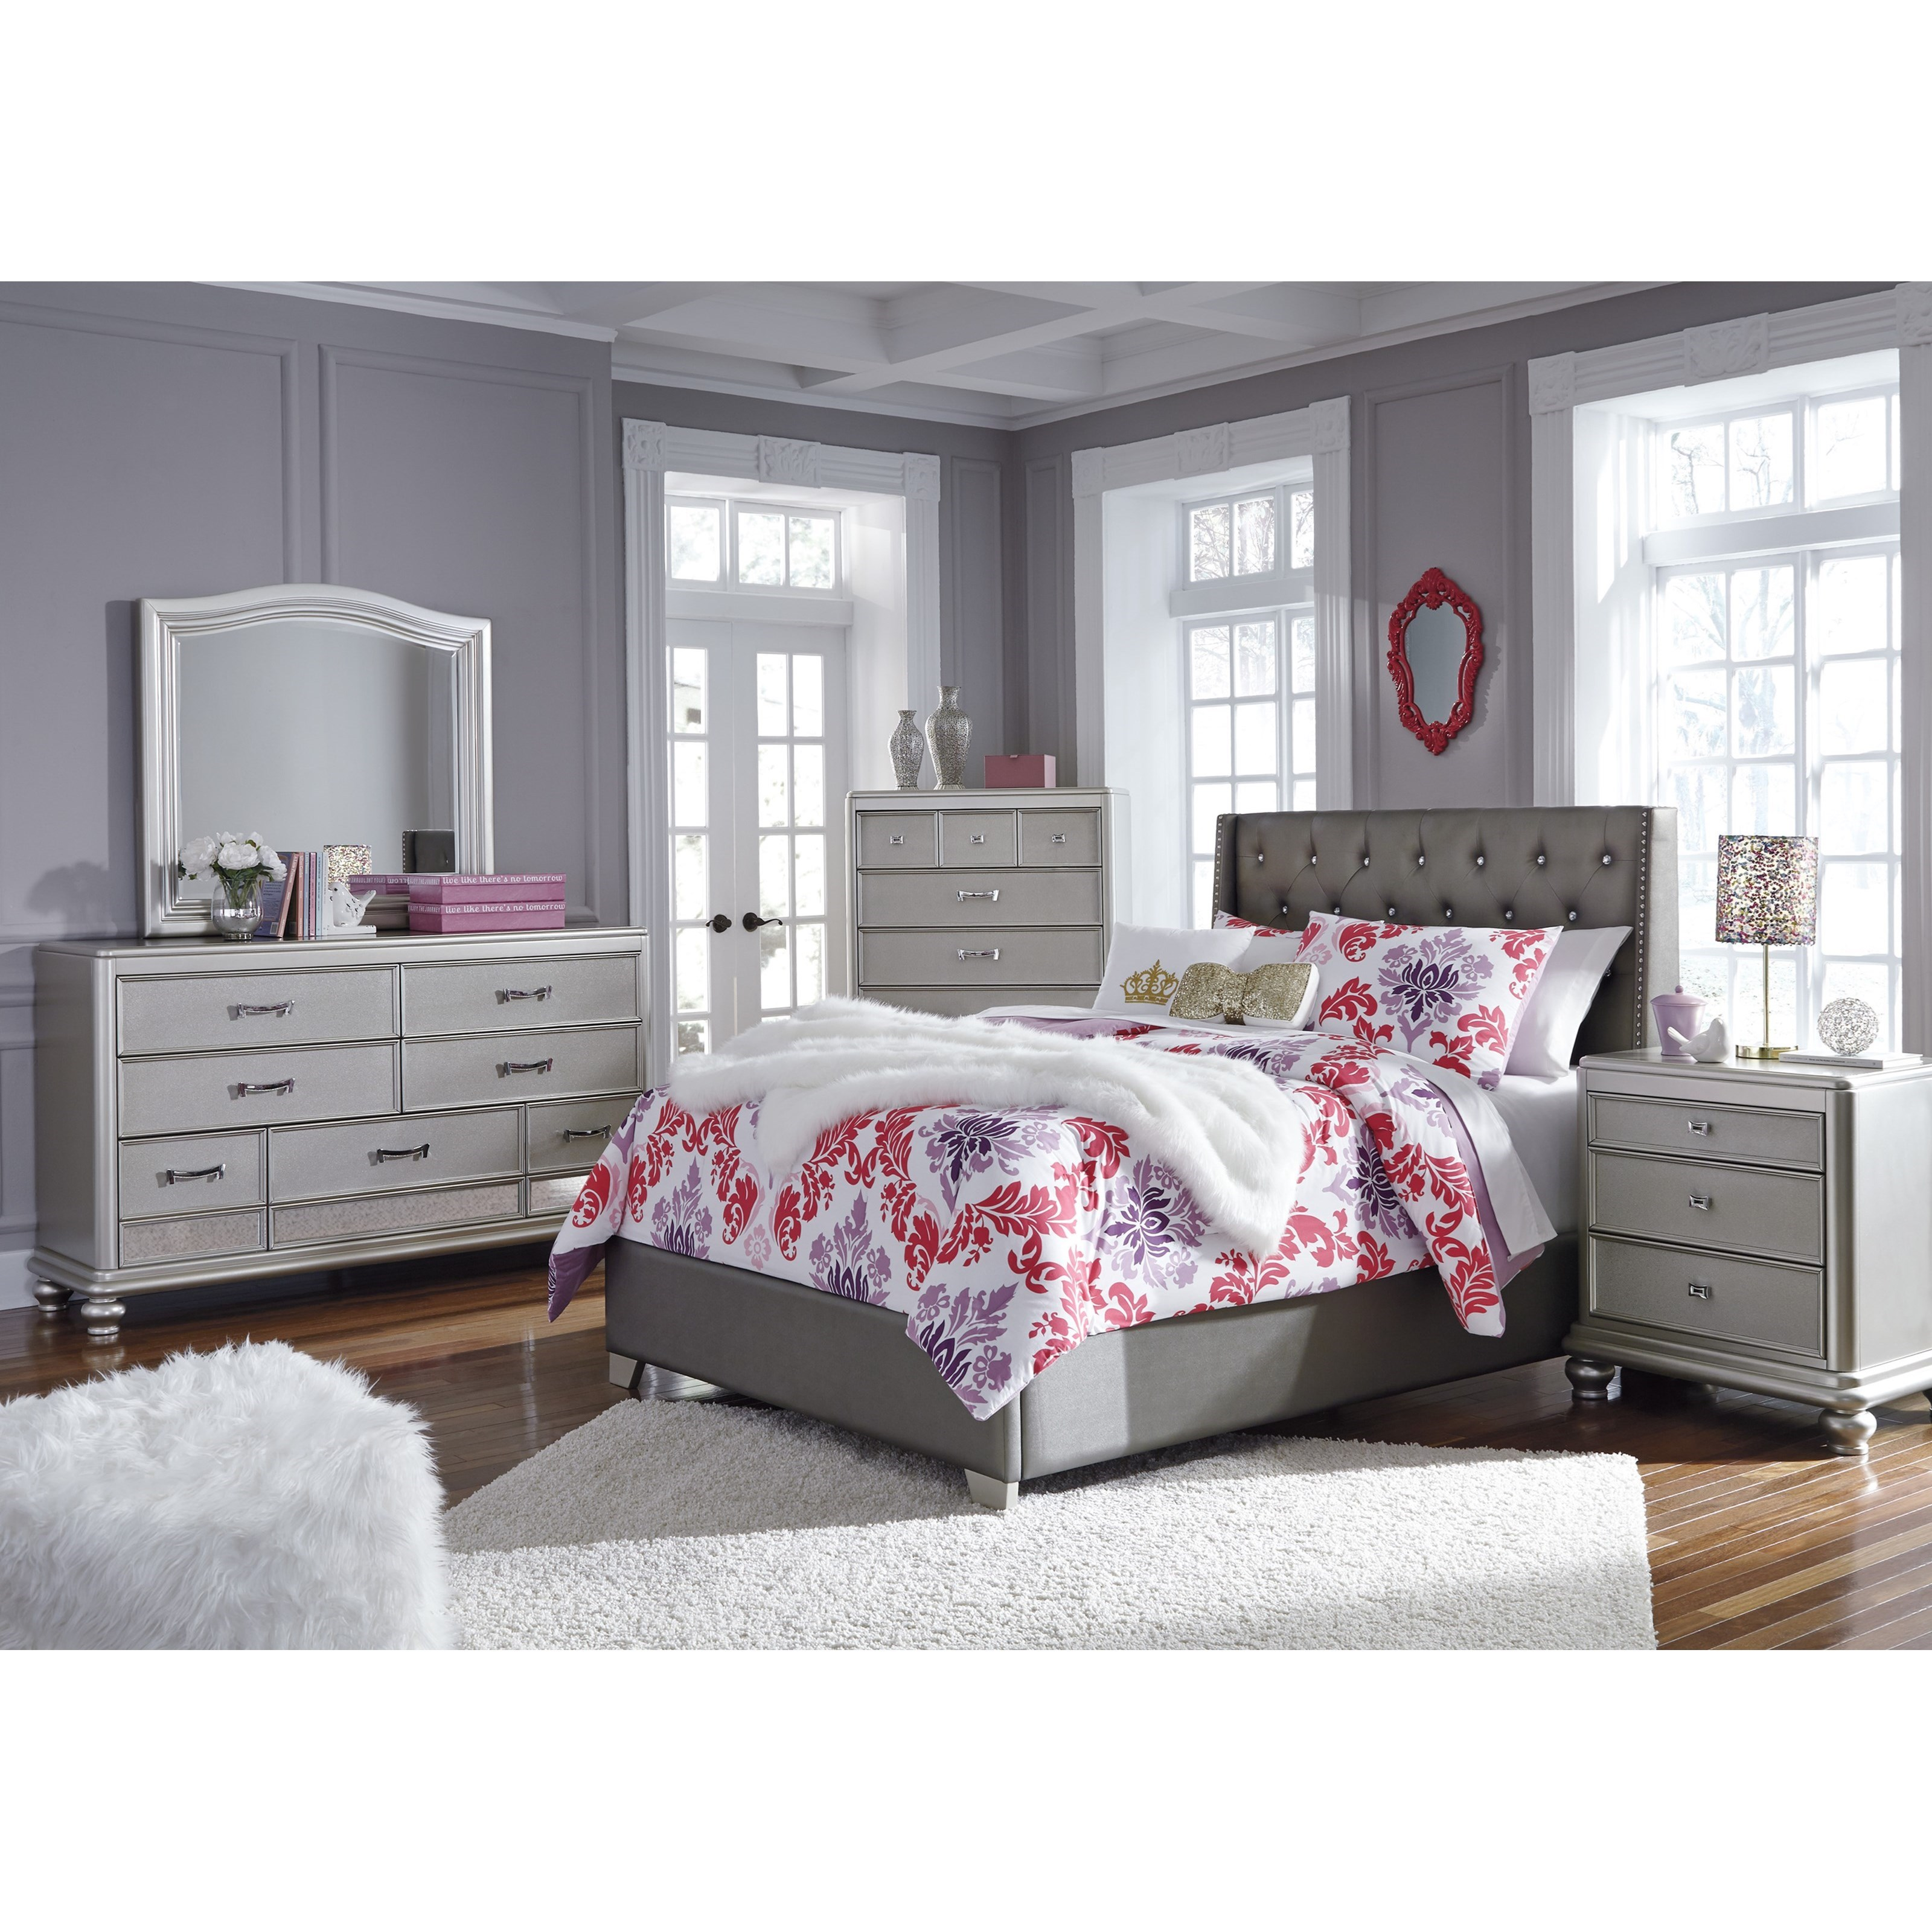 Signature design by ashley coralayne full upholstered bed - Ashley furniture full bedroom sets ...